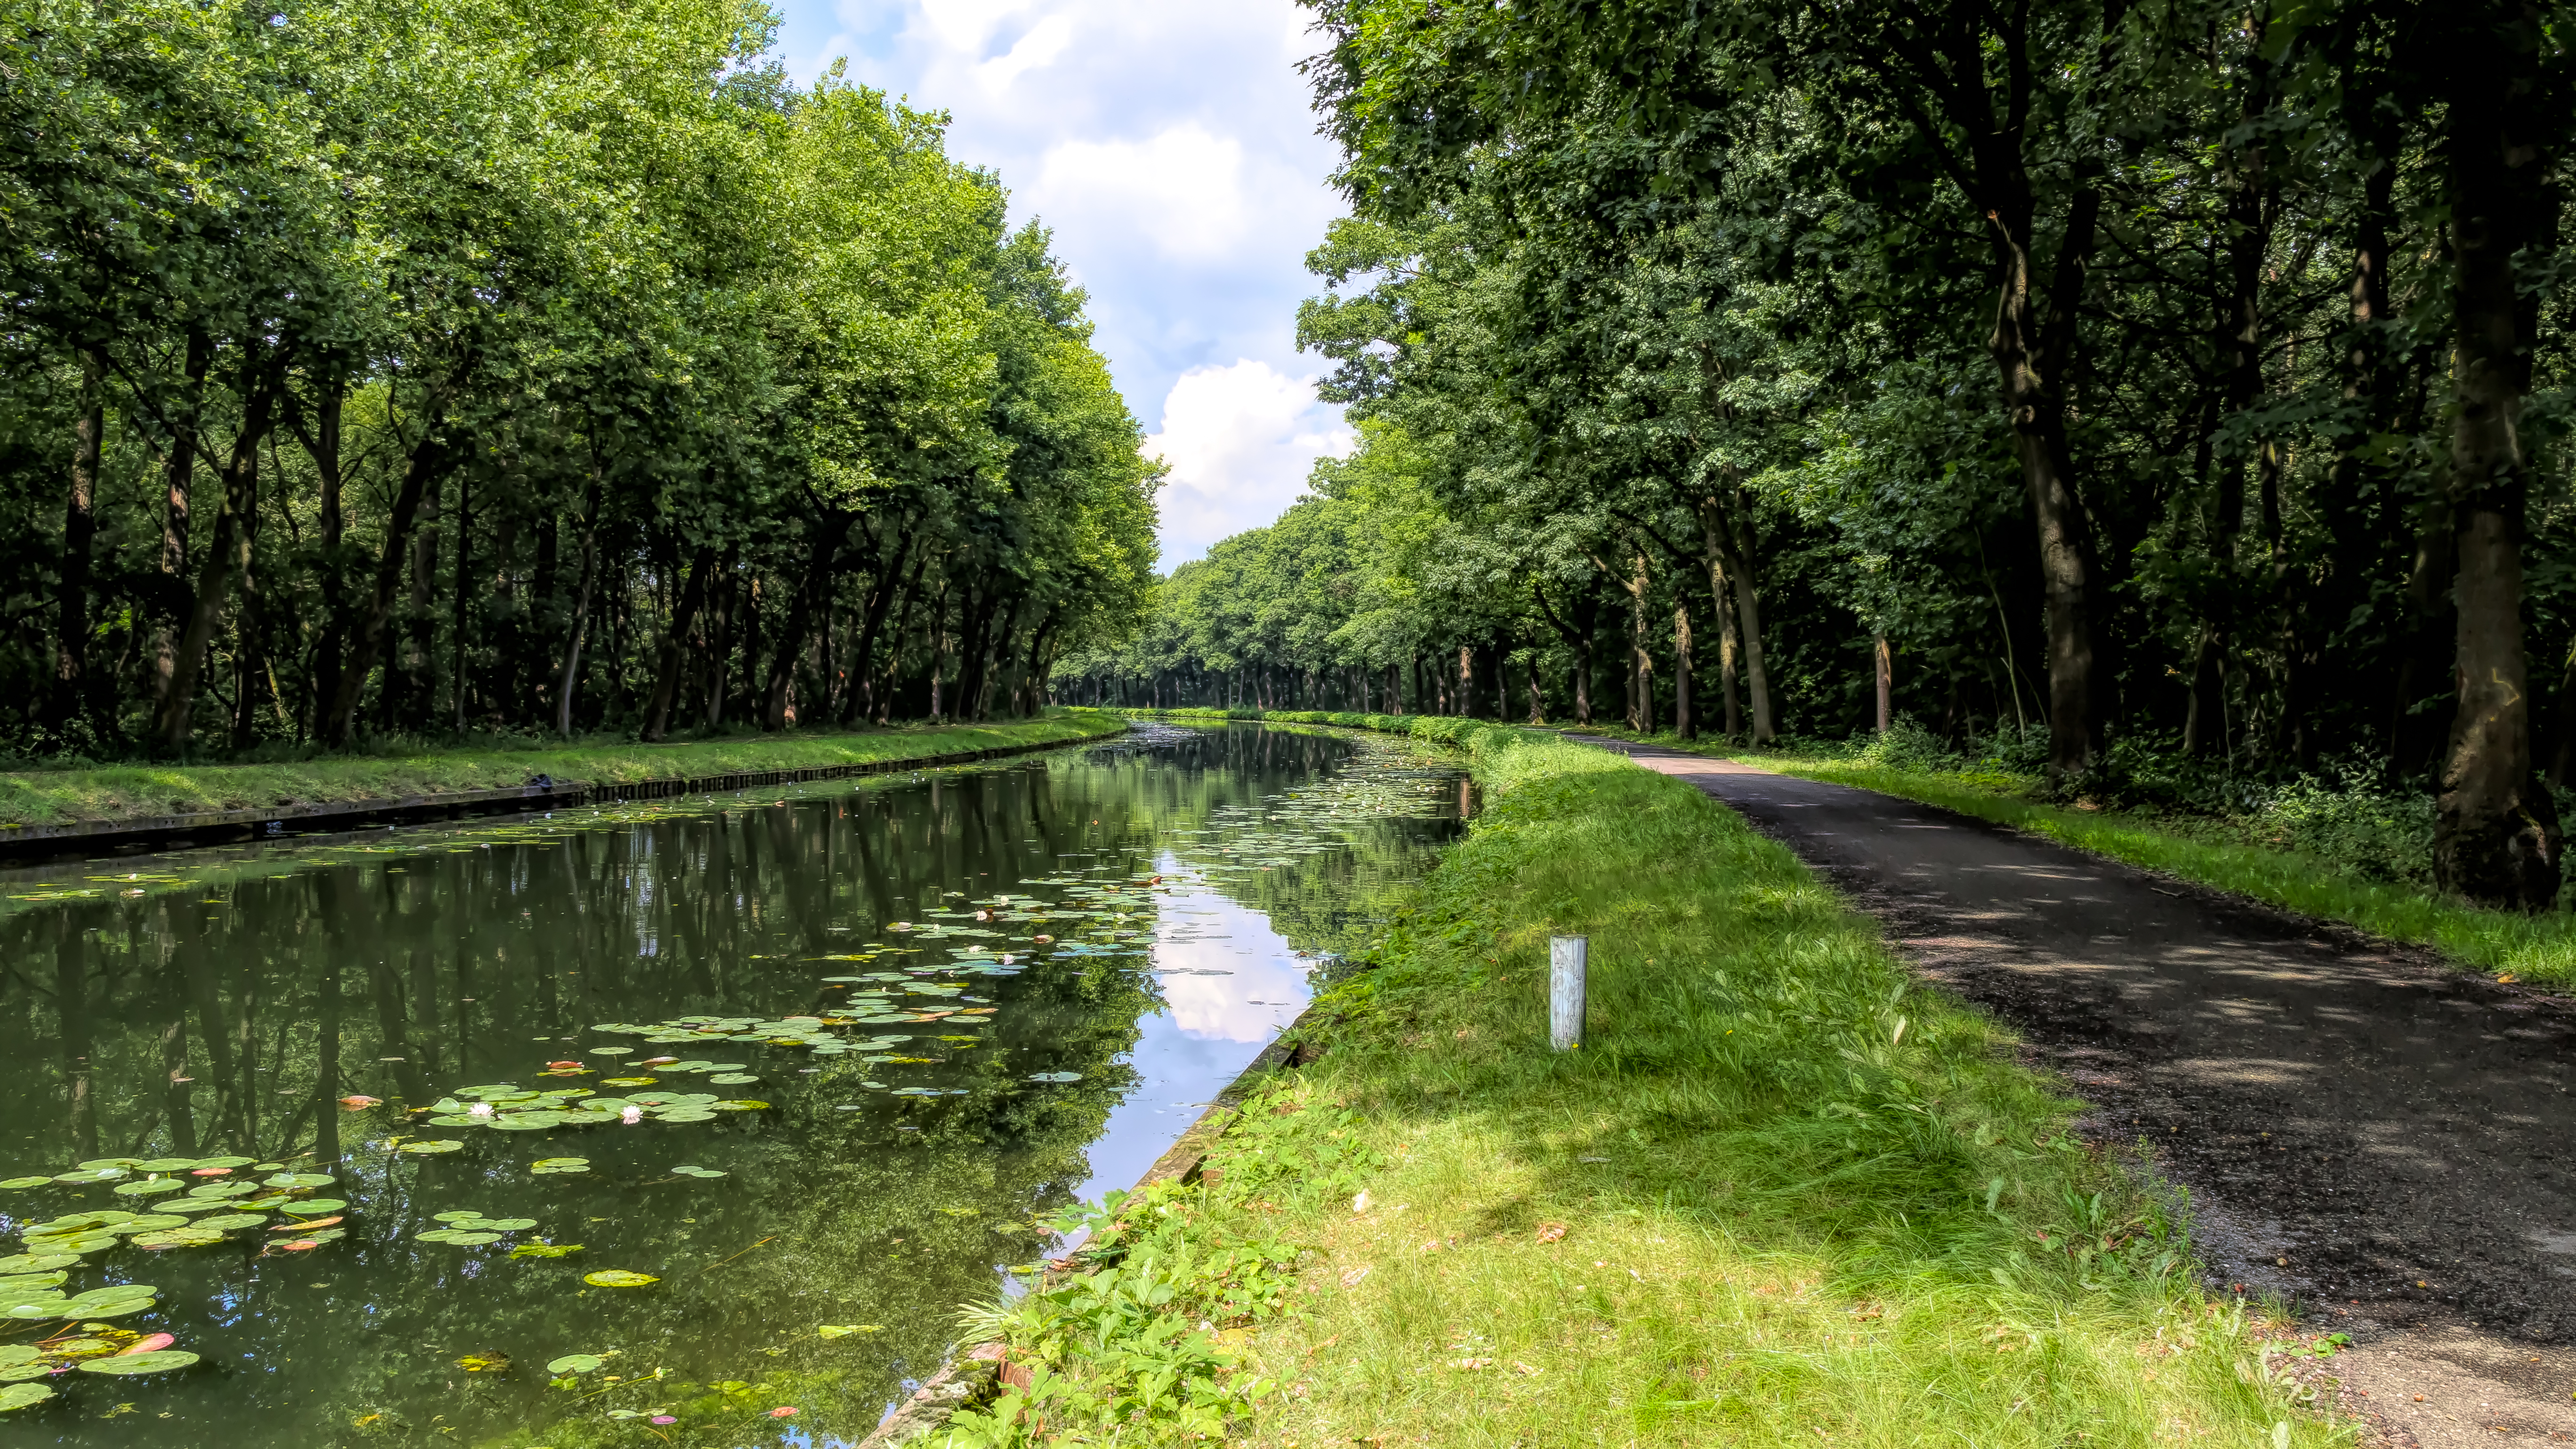 The Canal to Beverlo